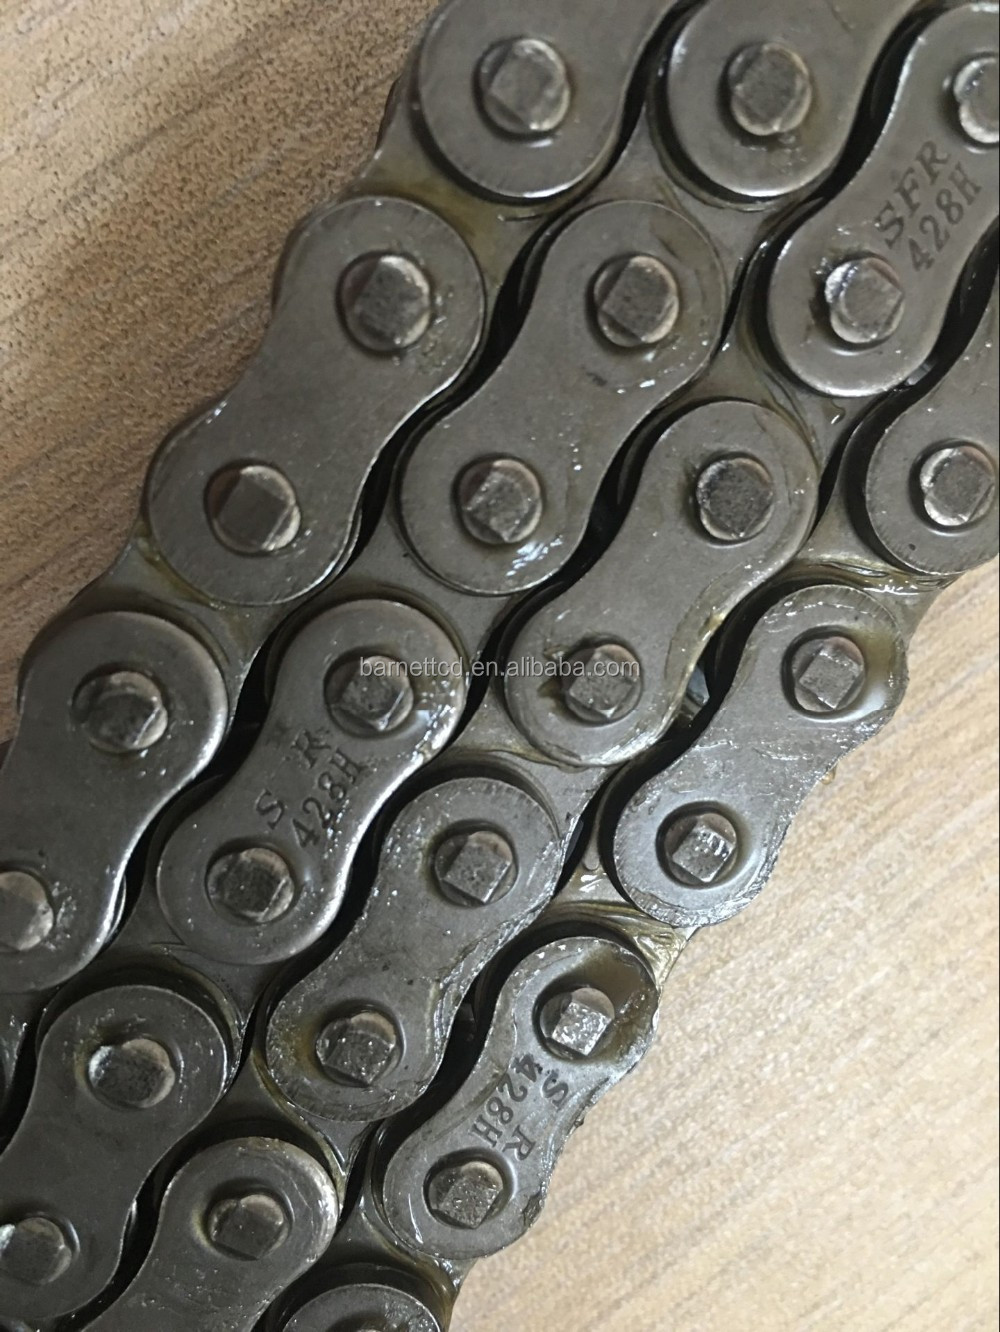 428H 118L Stainless Steel Motorcycle Driving Chain and sprocket